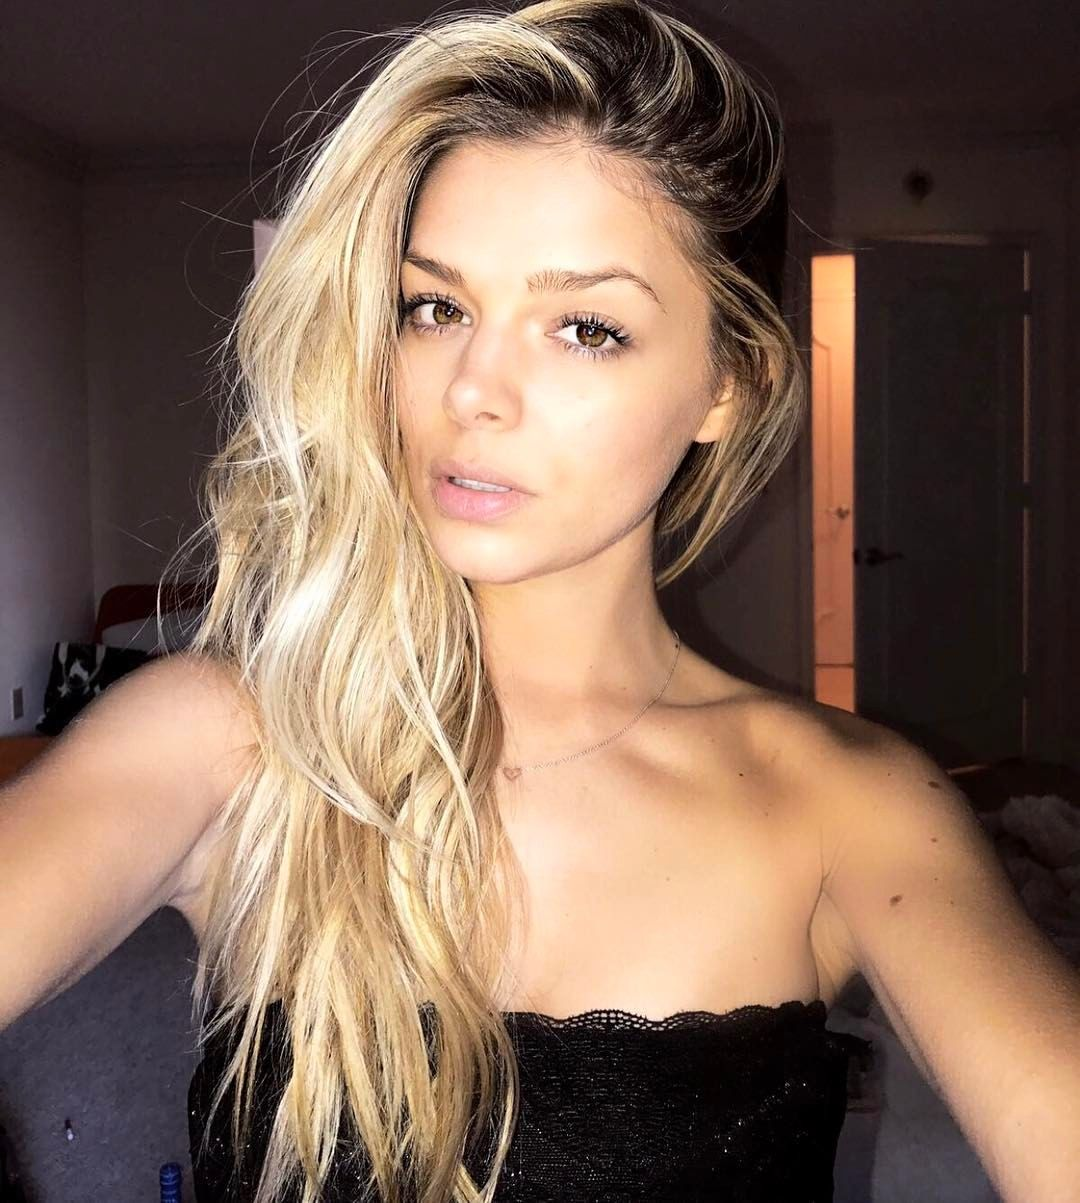 Selfie Danielle Knudson naked (25 foto and video), Tits, Leaked, Boobs, lingerie 2020